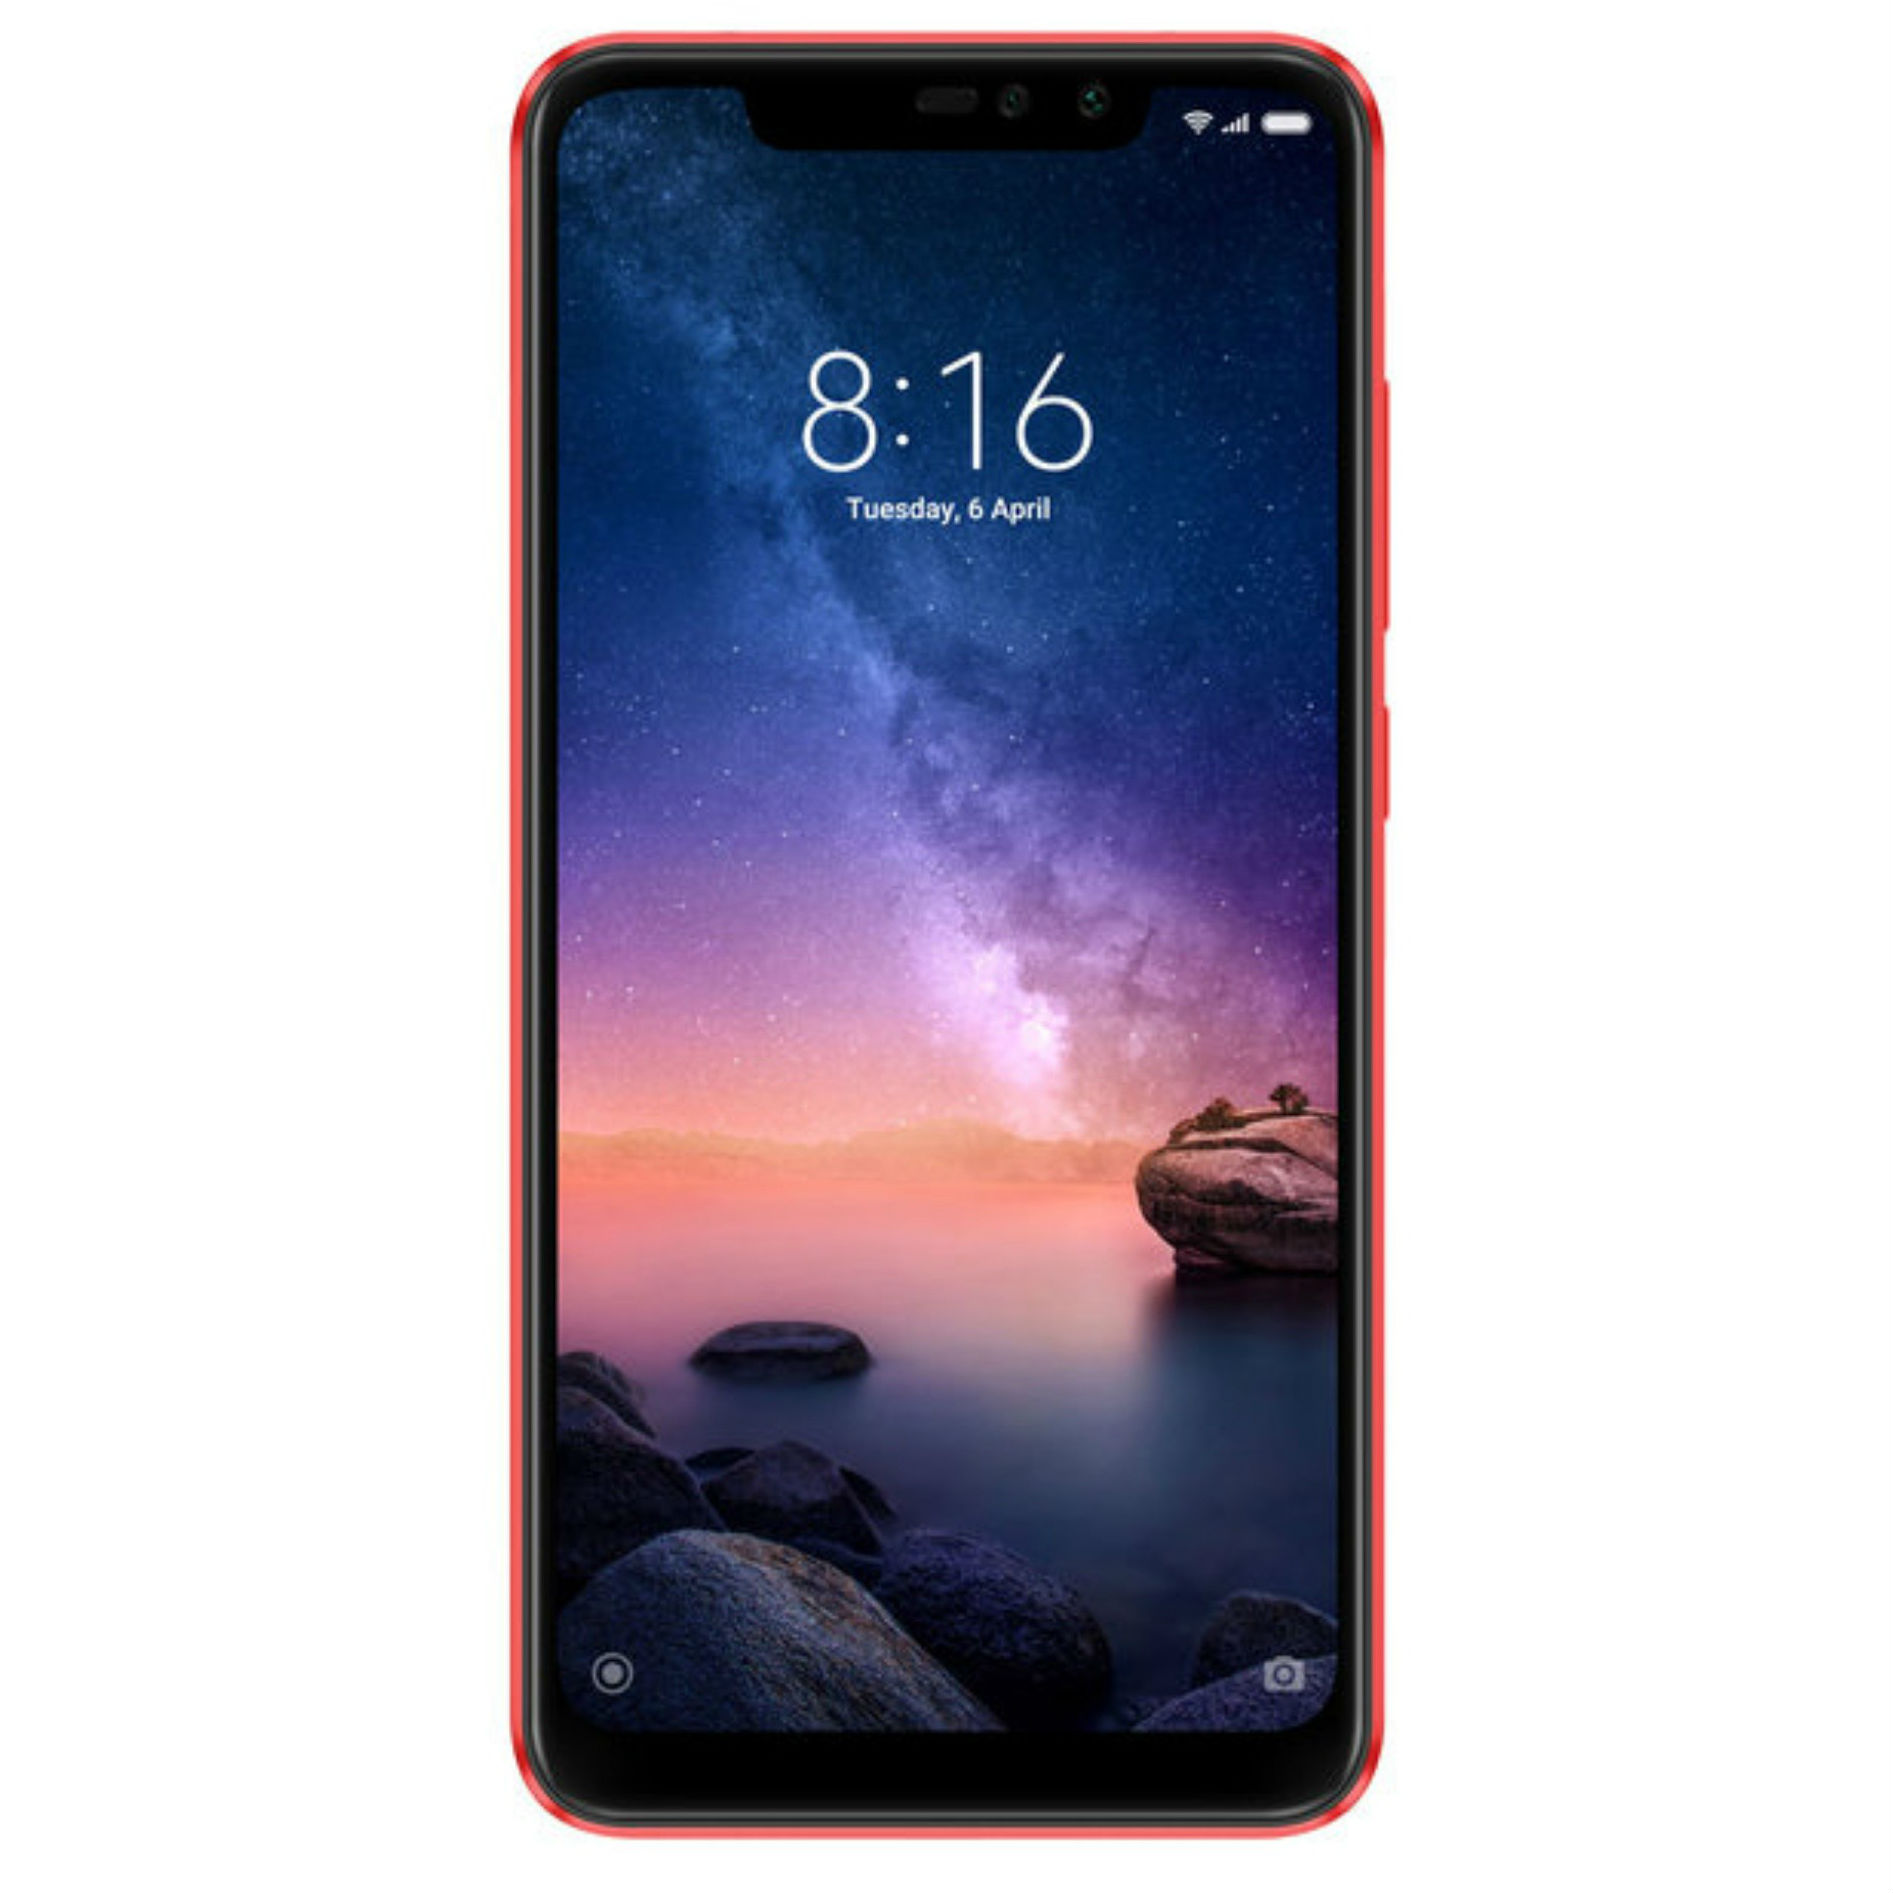 Image of Xiaomi Redmi Note 6 pro 4GB/64GB Dual Sim SIM FREE/ UNLOCKED - Red